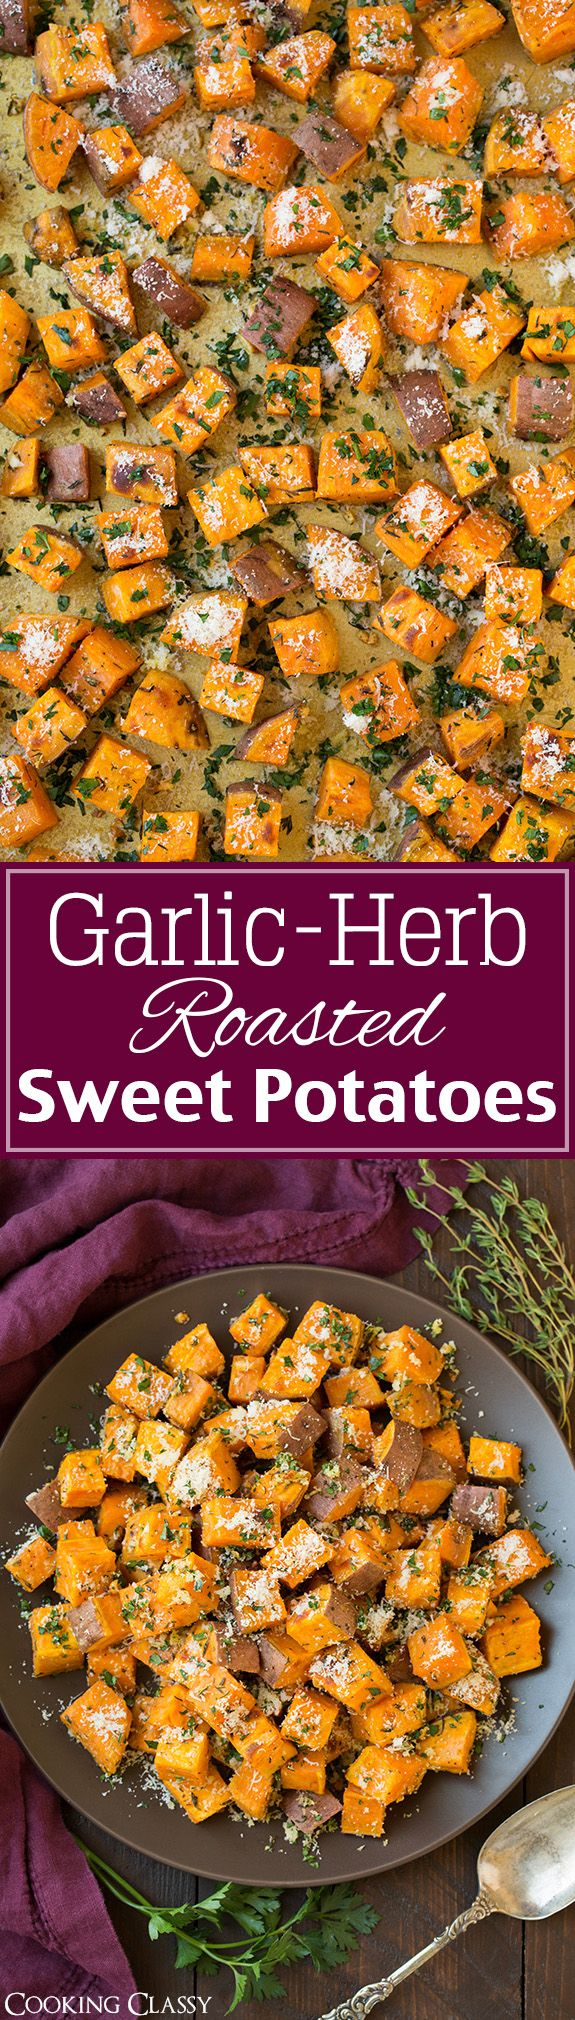 Garlic-Herb Roasted Sweet Potatoes with Parmesan | Recipe | The ...